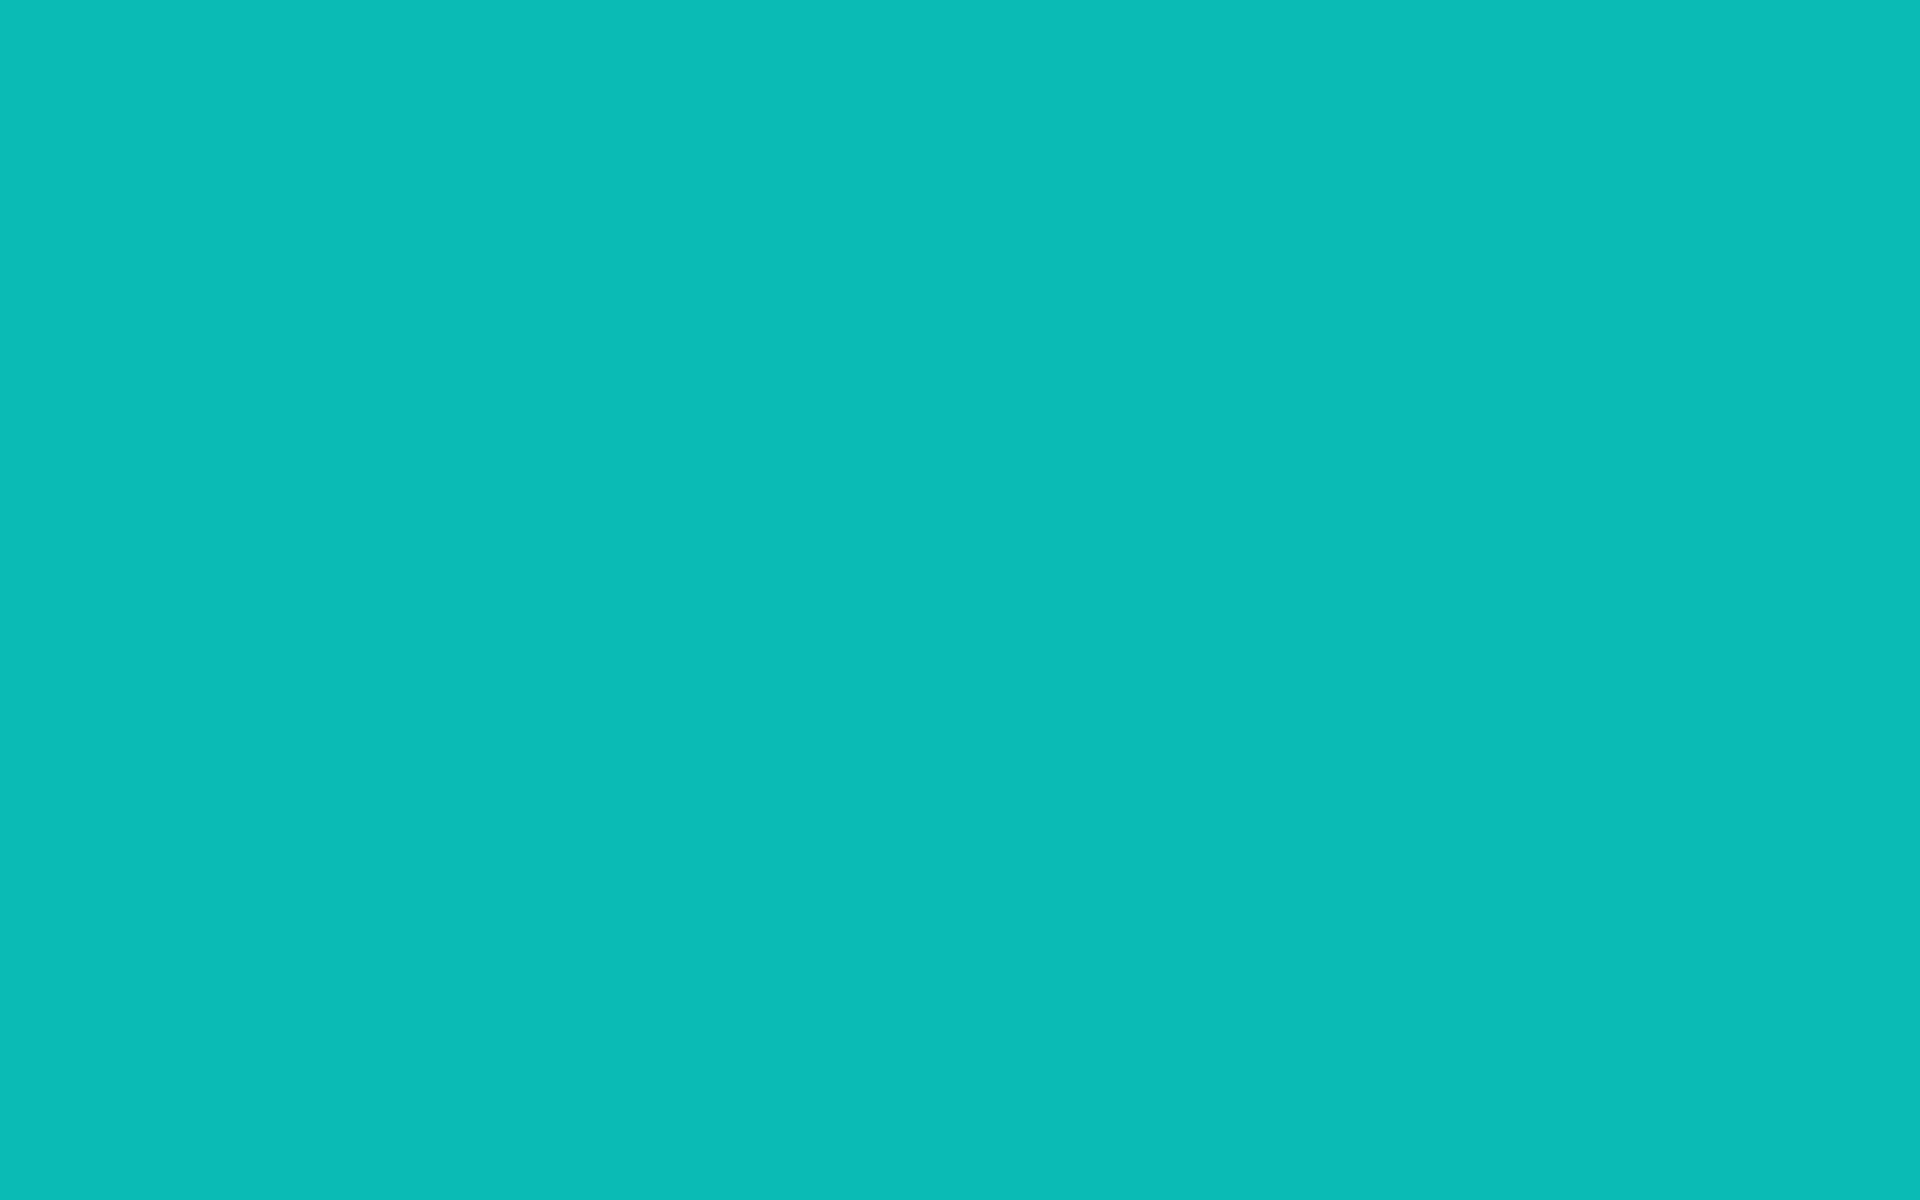 1920x1200 Tiffany Blue Solid Color Background